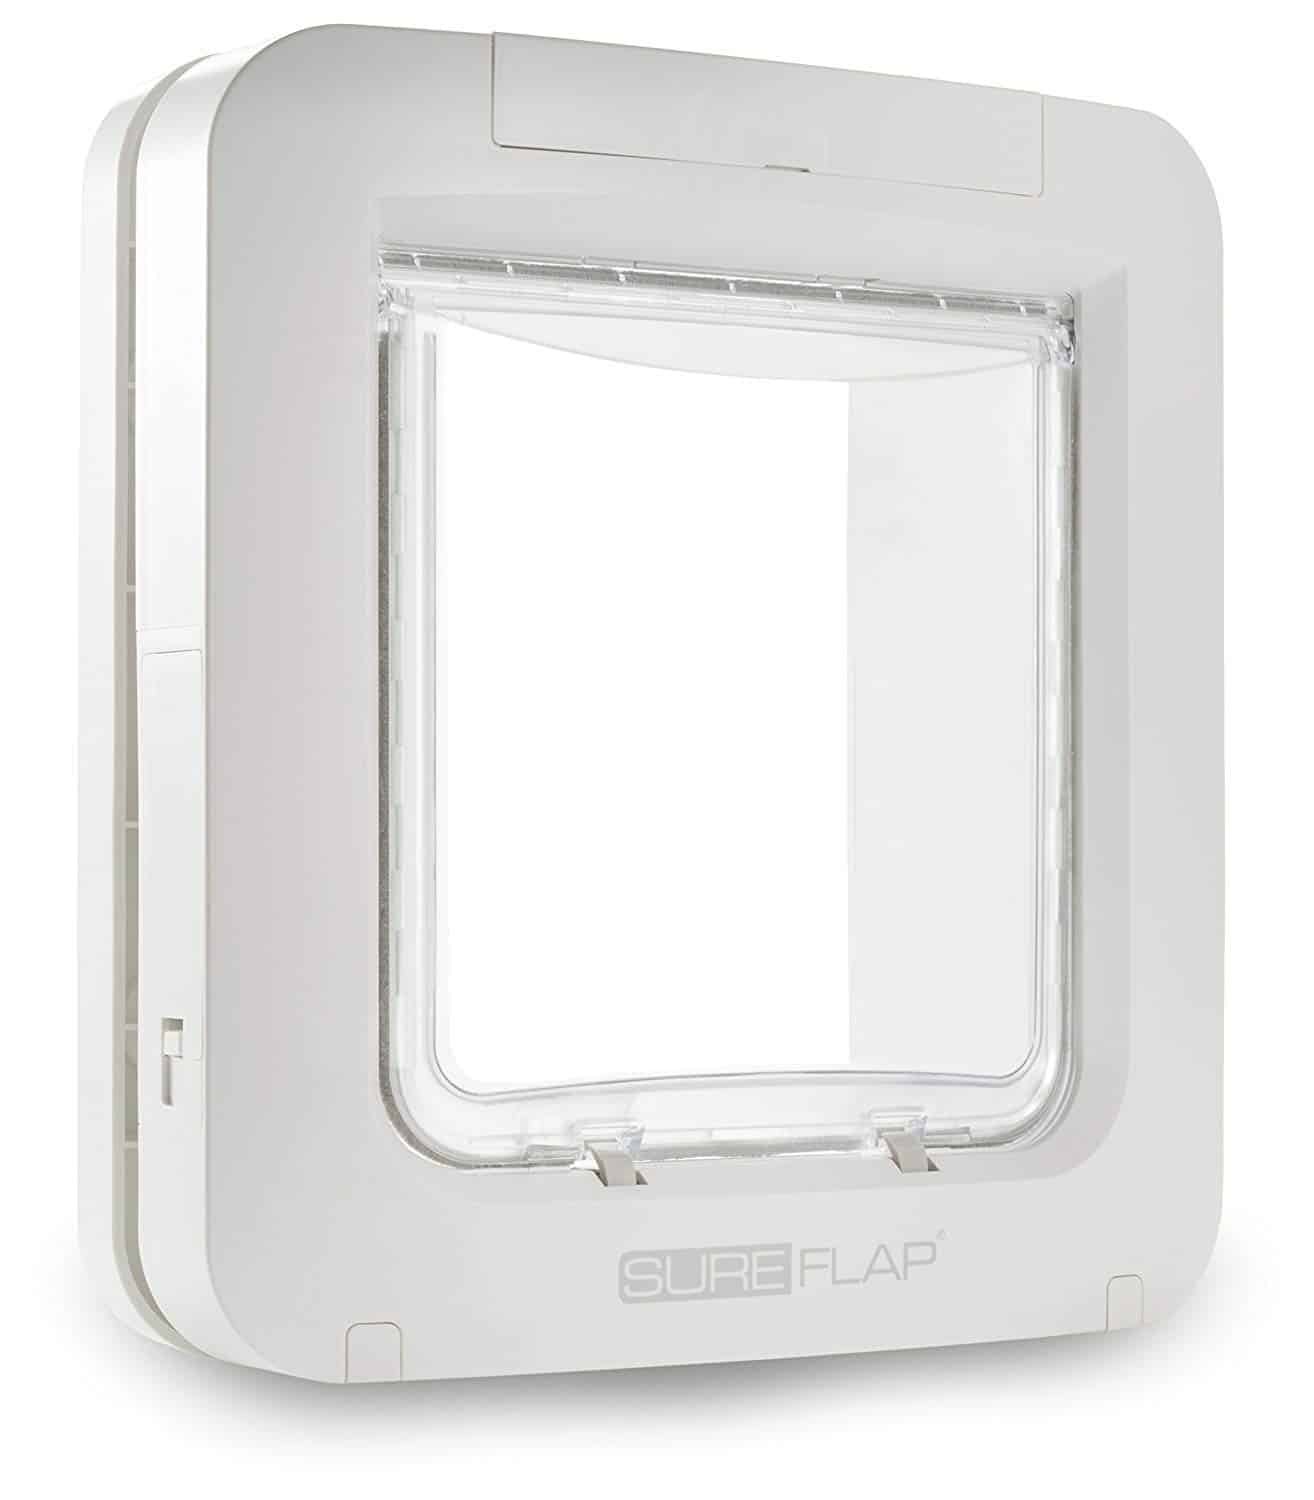 SureFlap with Microchip Pet Door